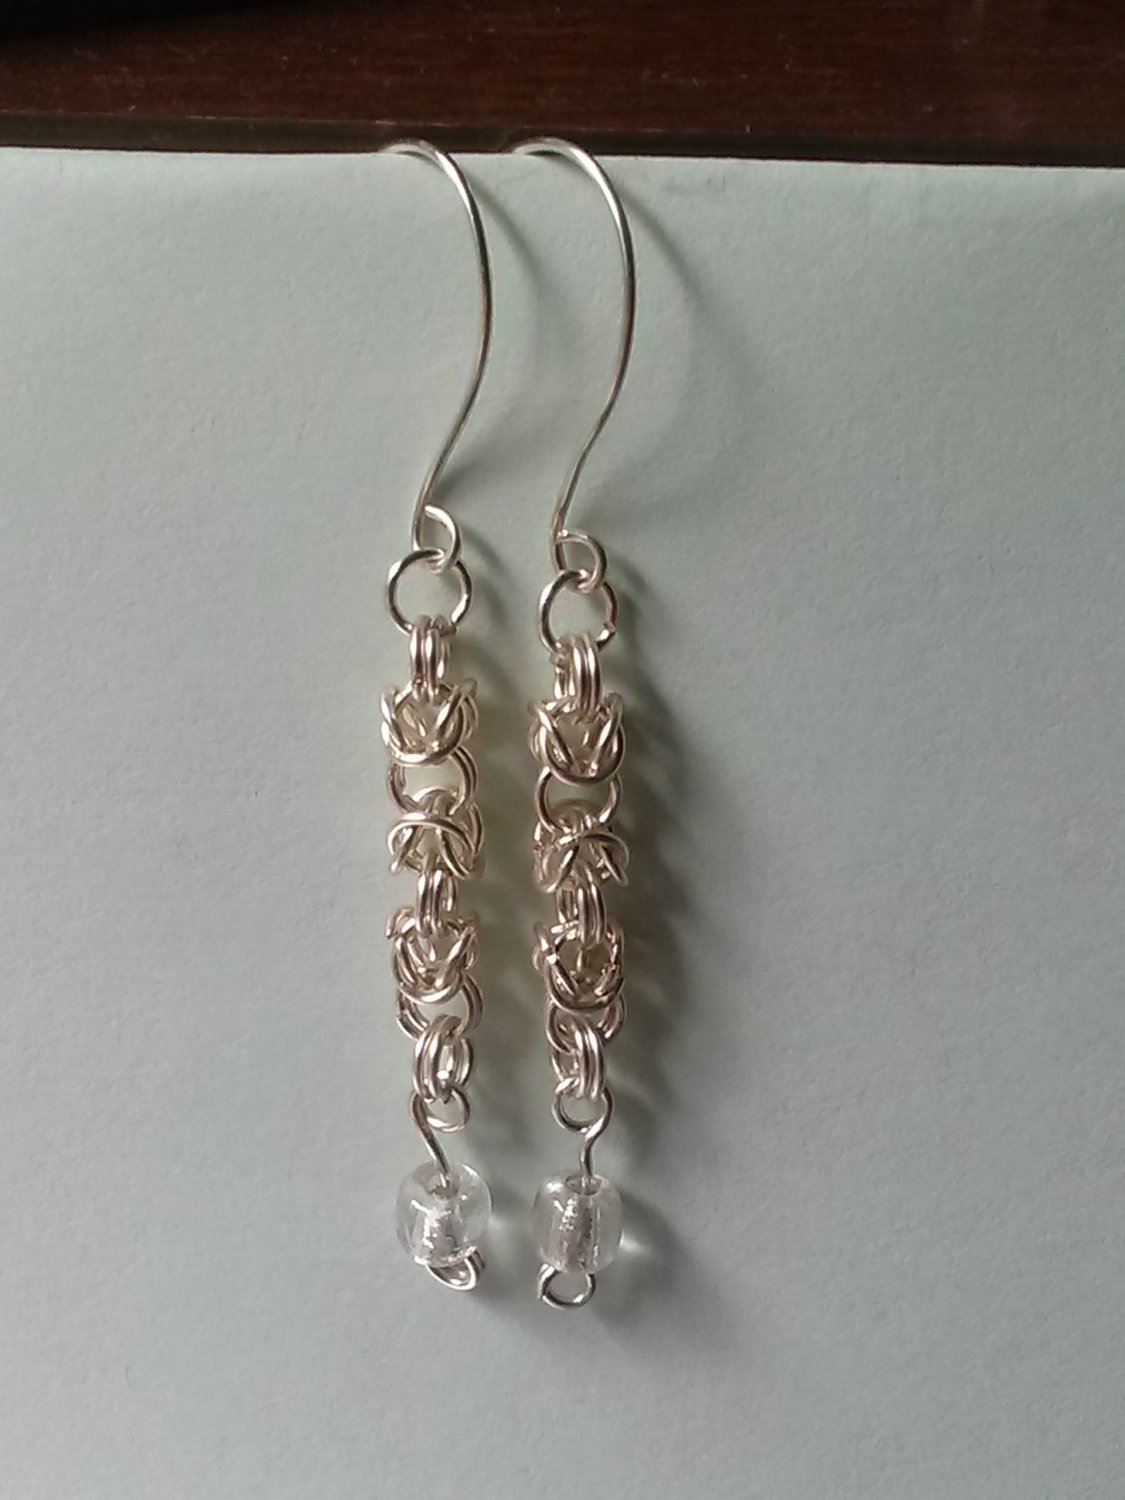 Hand-woven Byzantine Knot Earrings